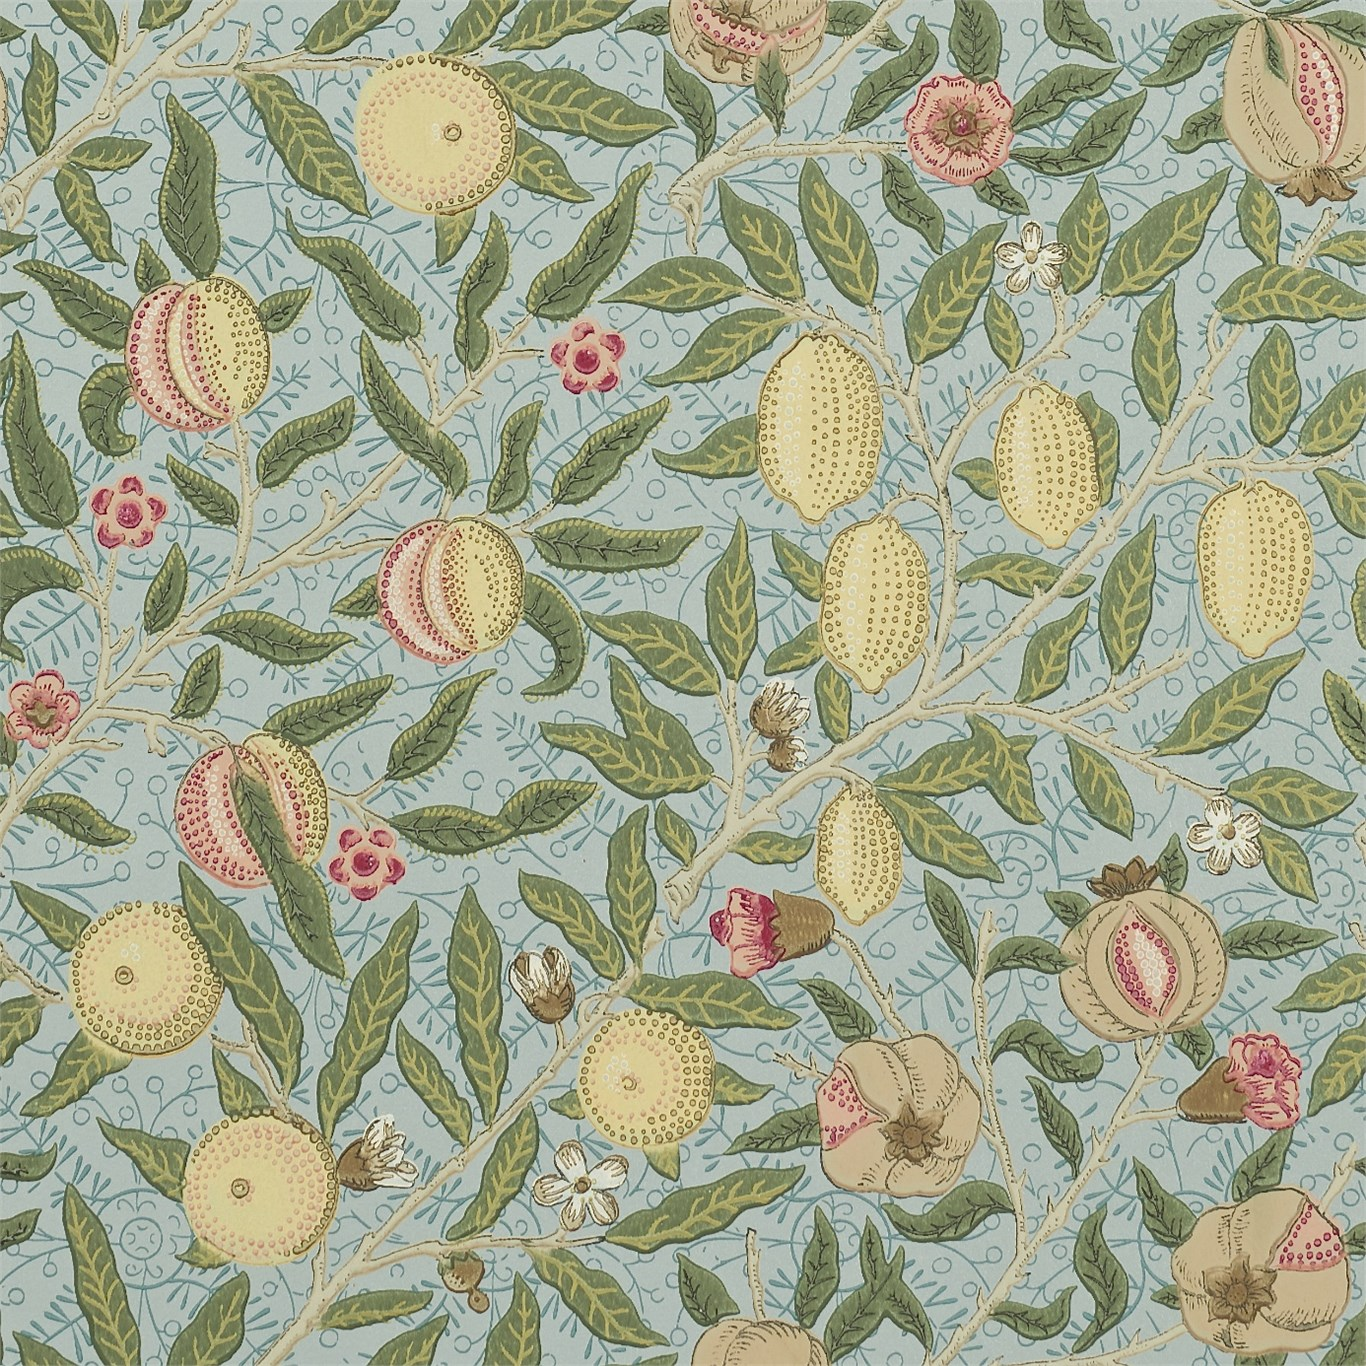 Free Download Co Arts And Crafts Fabrics And Wallpaper Designs By William Morris 1366x1366 For Your Desktop Mobile Tablet Explore 50 Buy William Morris Wallpaper William Morris Reproduction Wallpaper